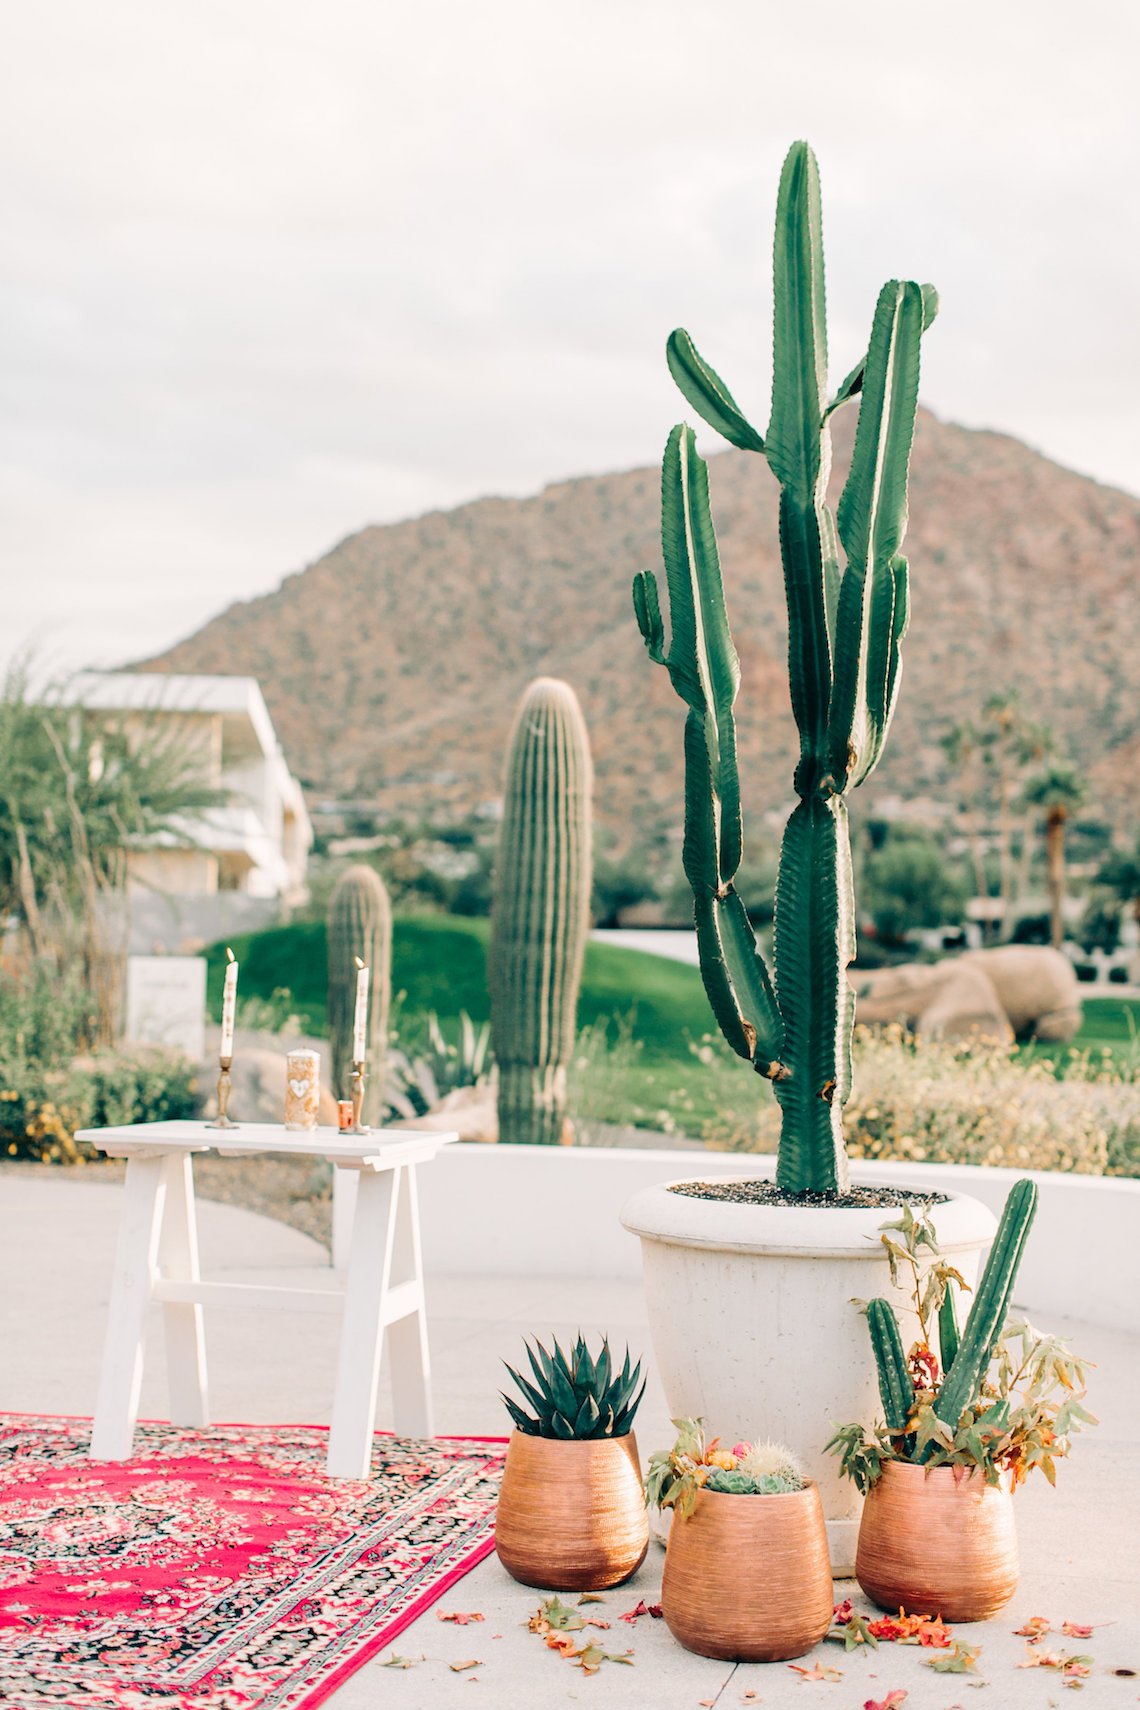 Midcentury Modern Desert Wedding Made Of Boho Dreams | Vienna Glenn 16